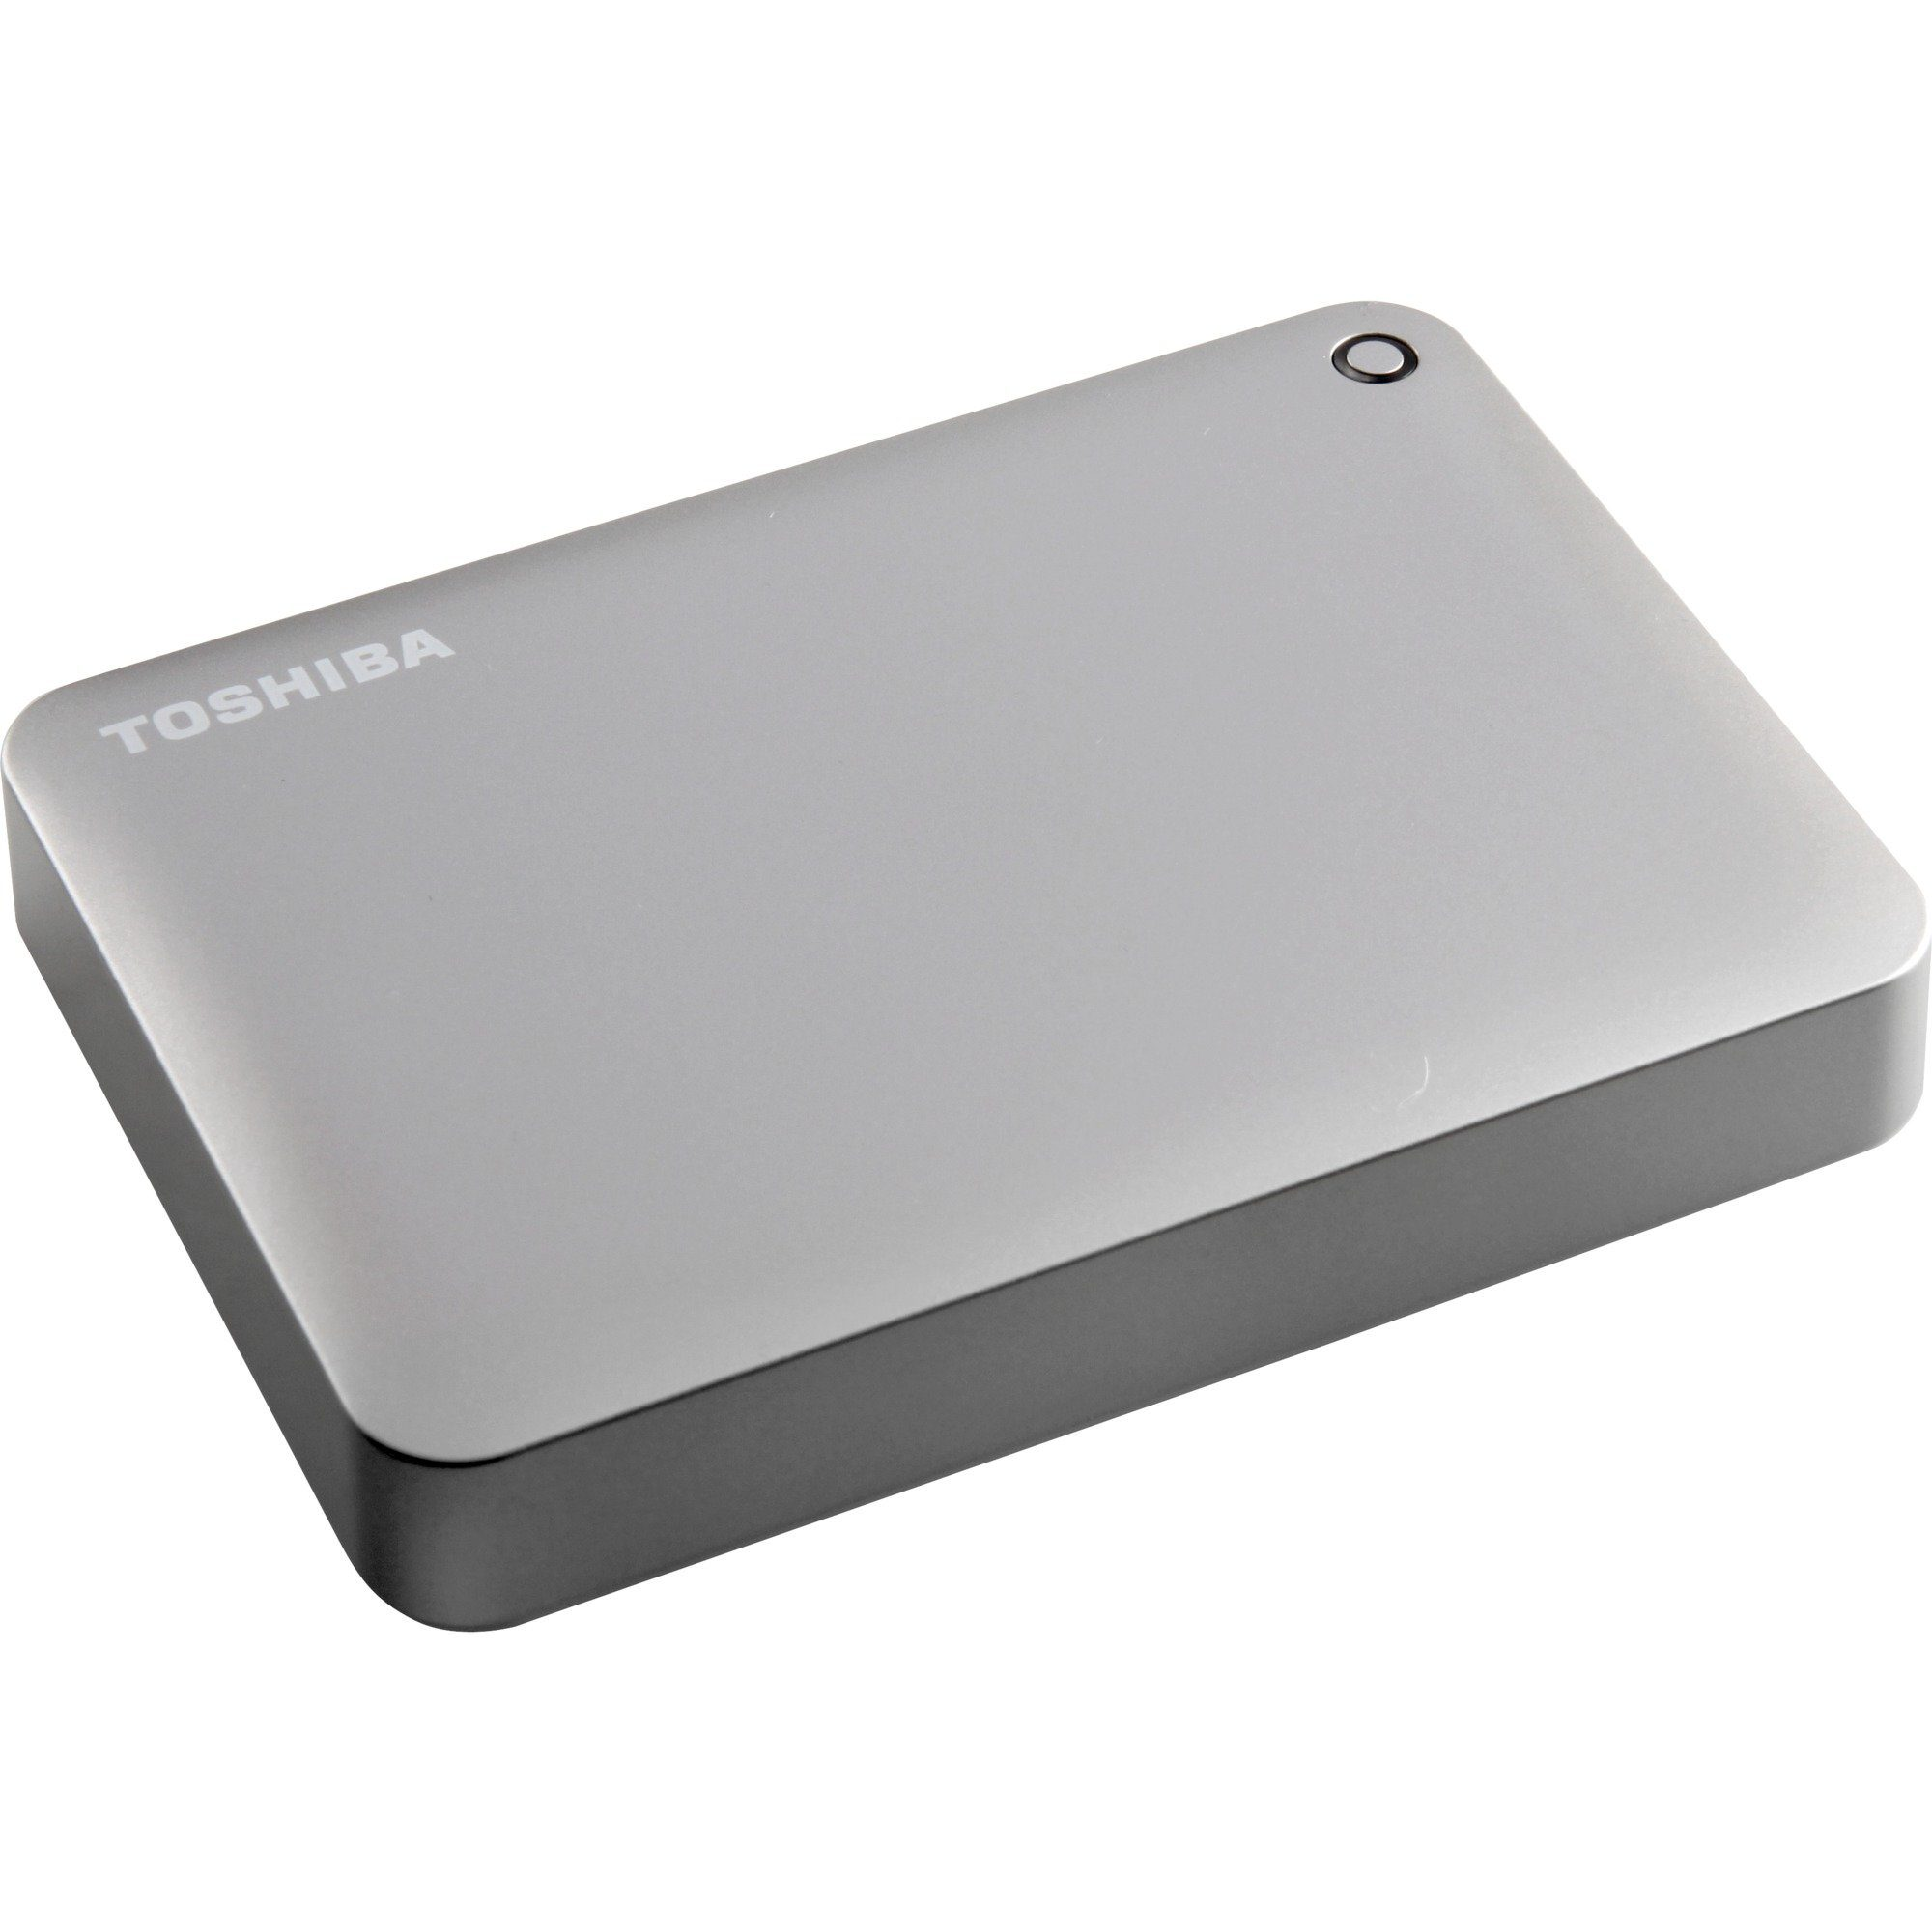 Toshiba Festplatte »Canvio Connect II 2 TB«